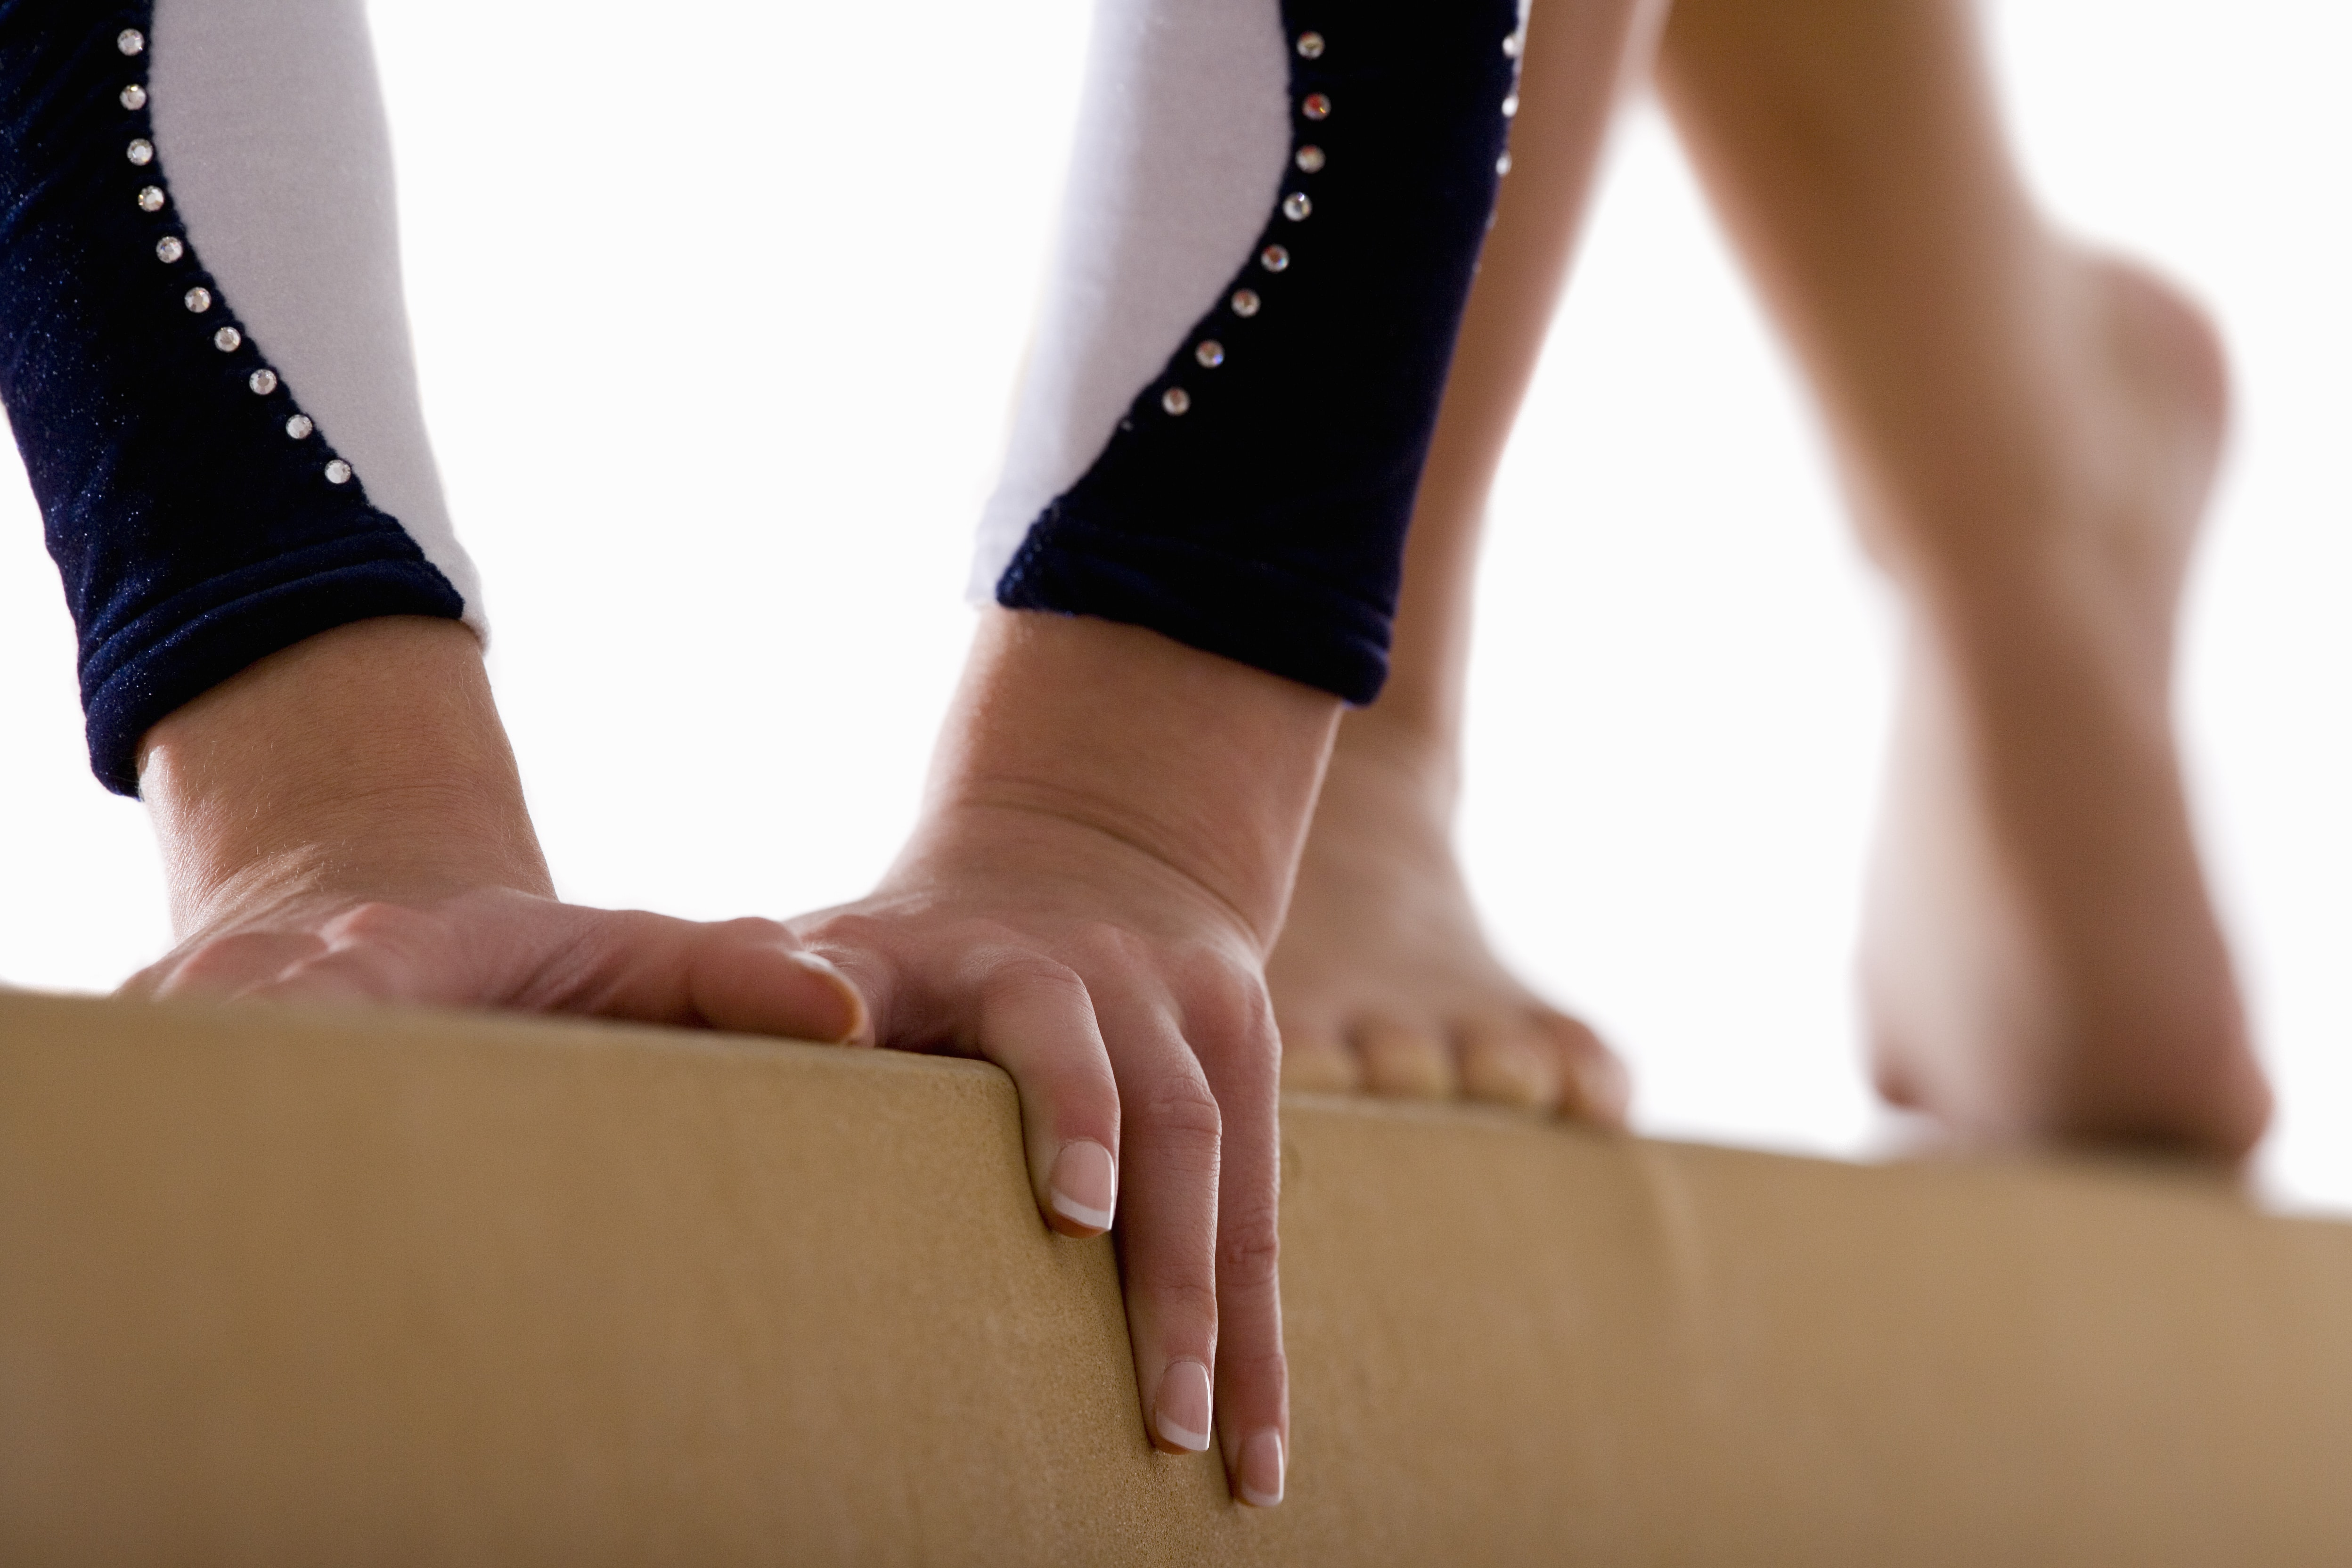 Female gymnast performing on balance beam, close-up, low section